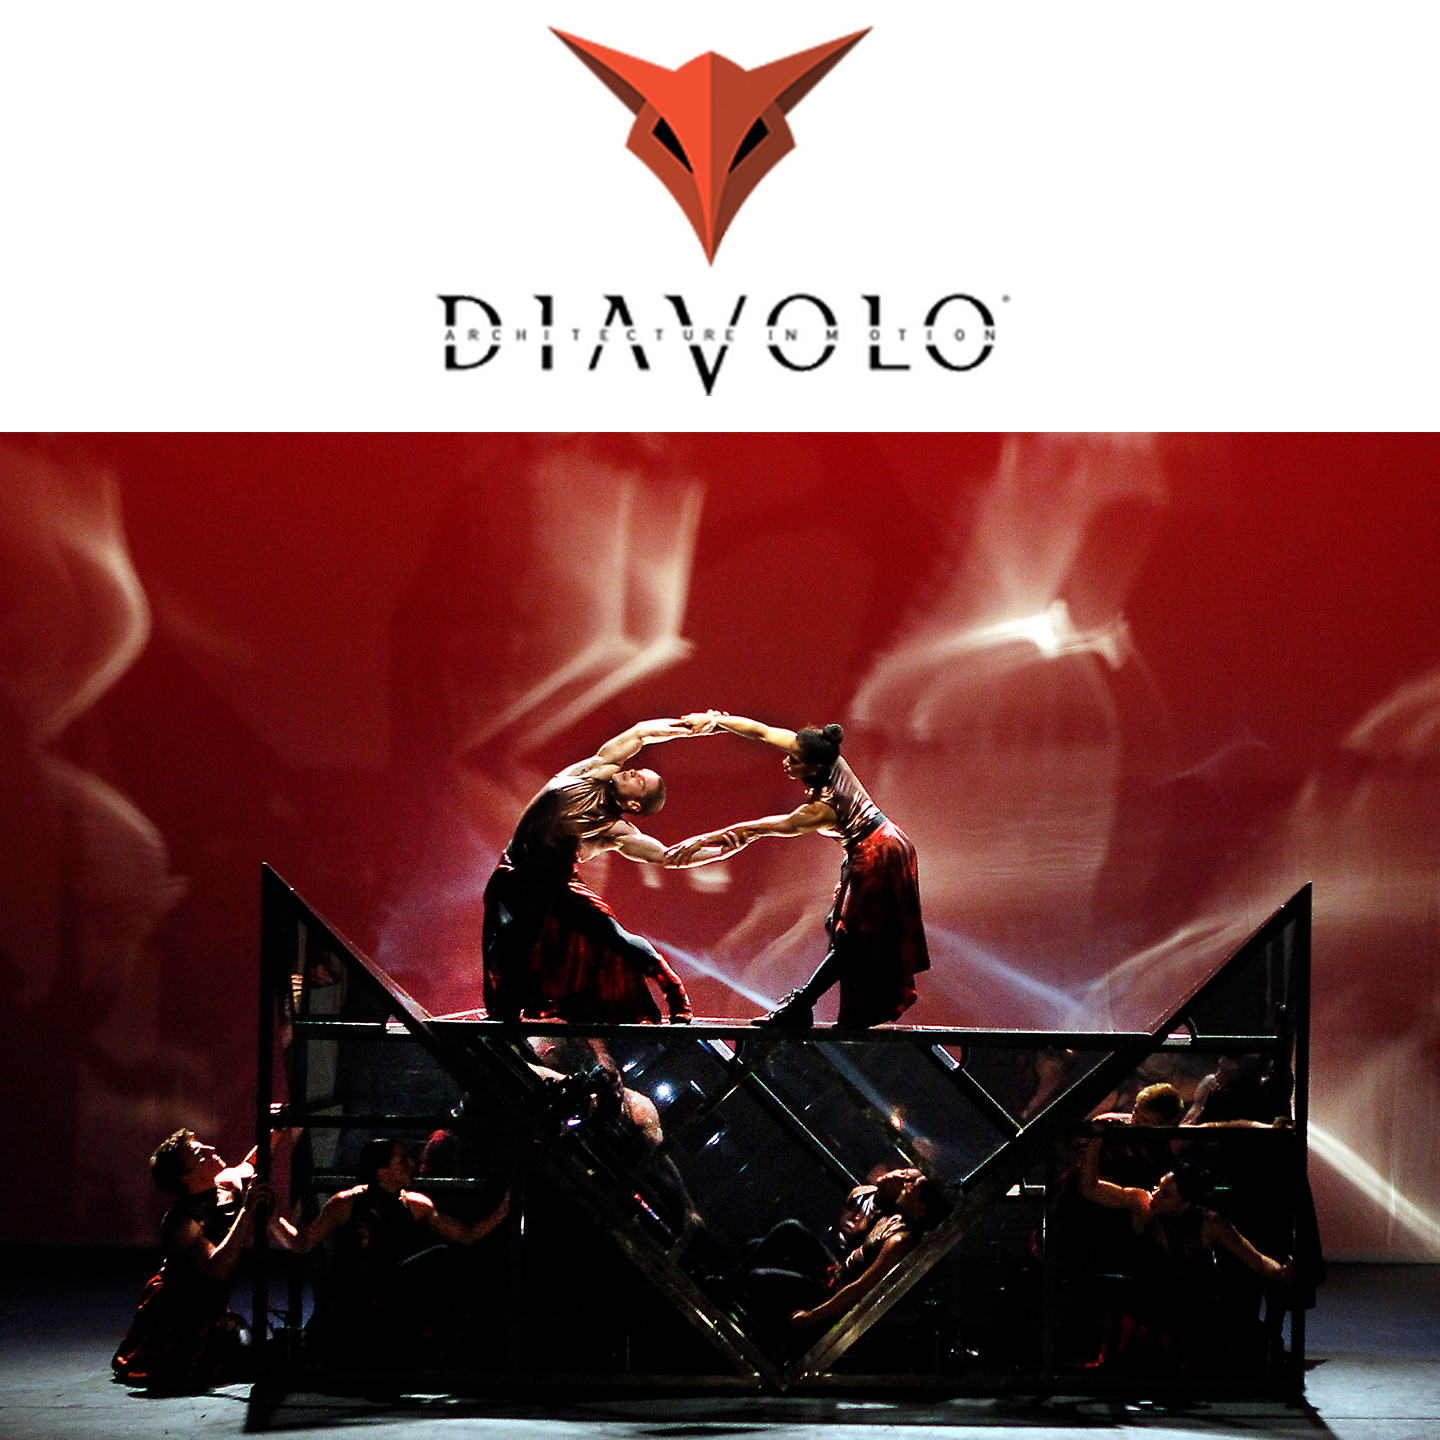 Diavolo: Architecture in Motion